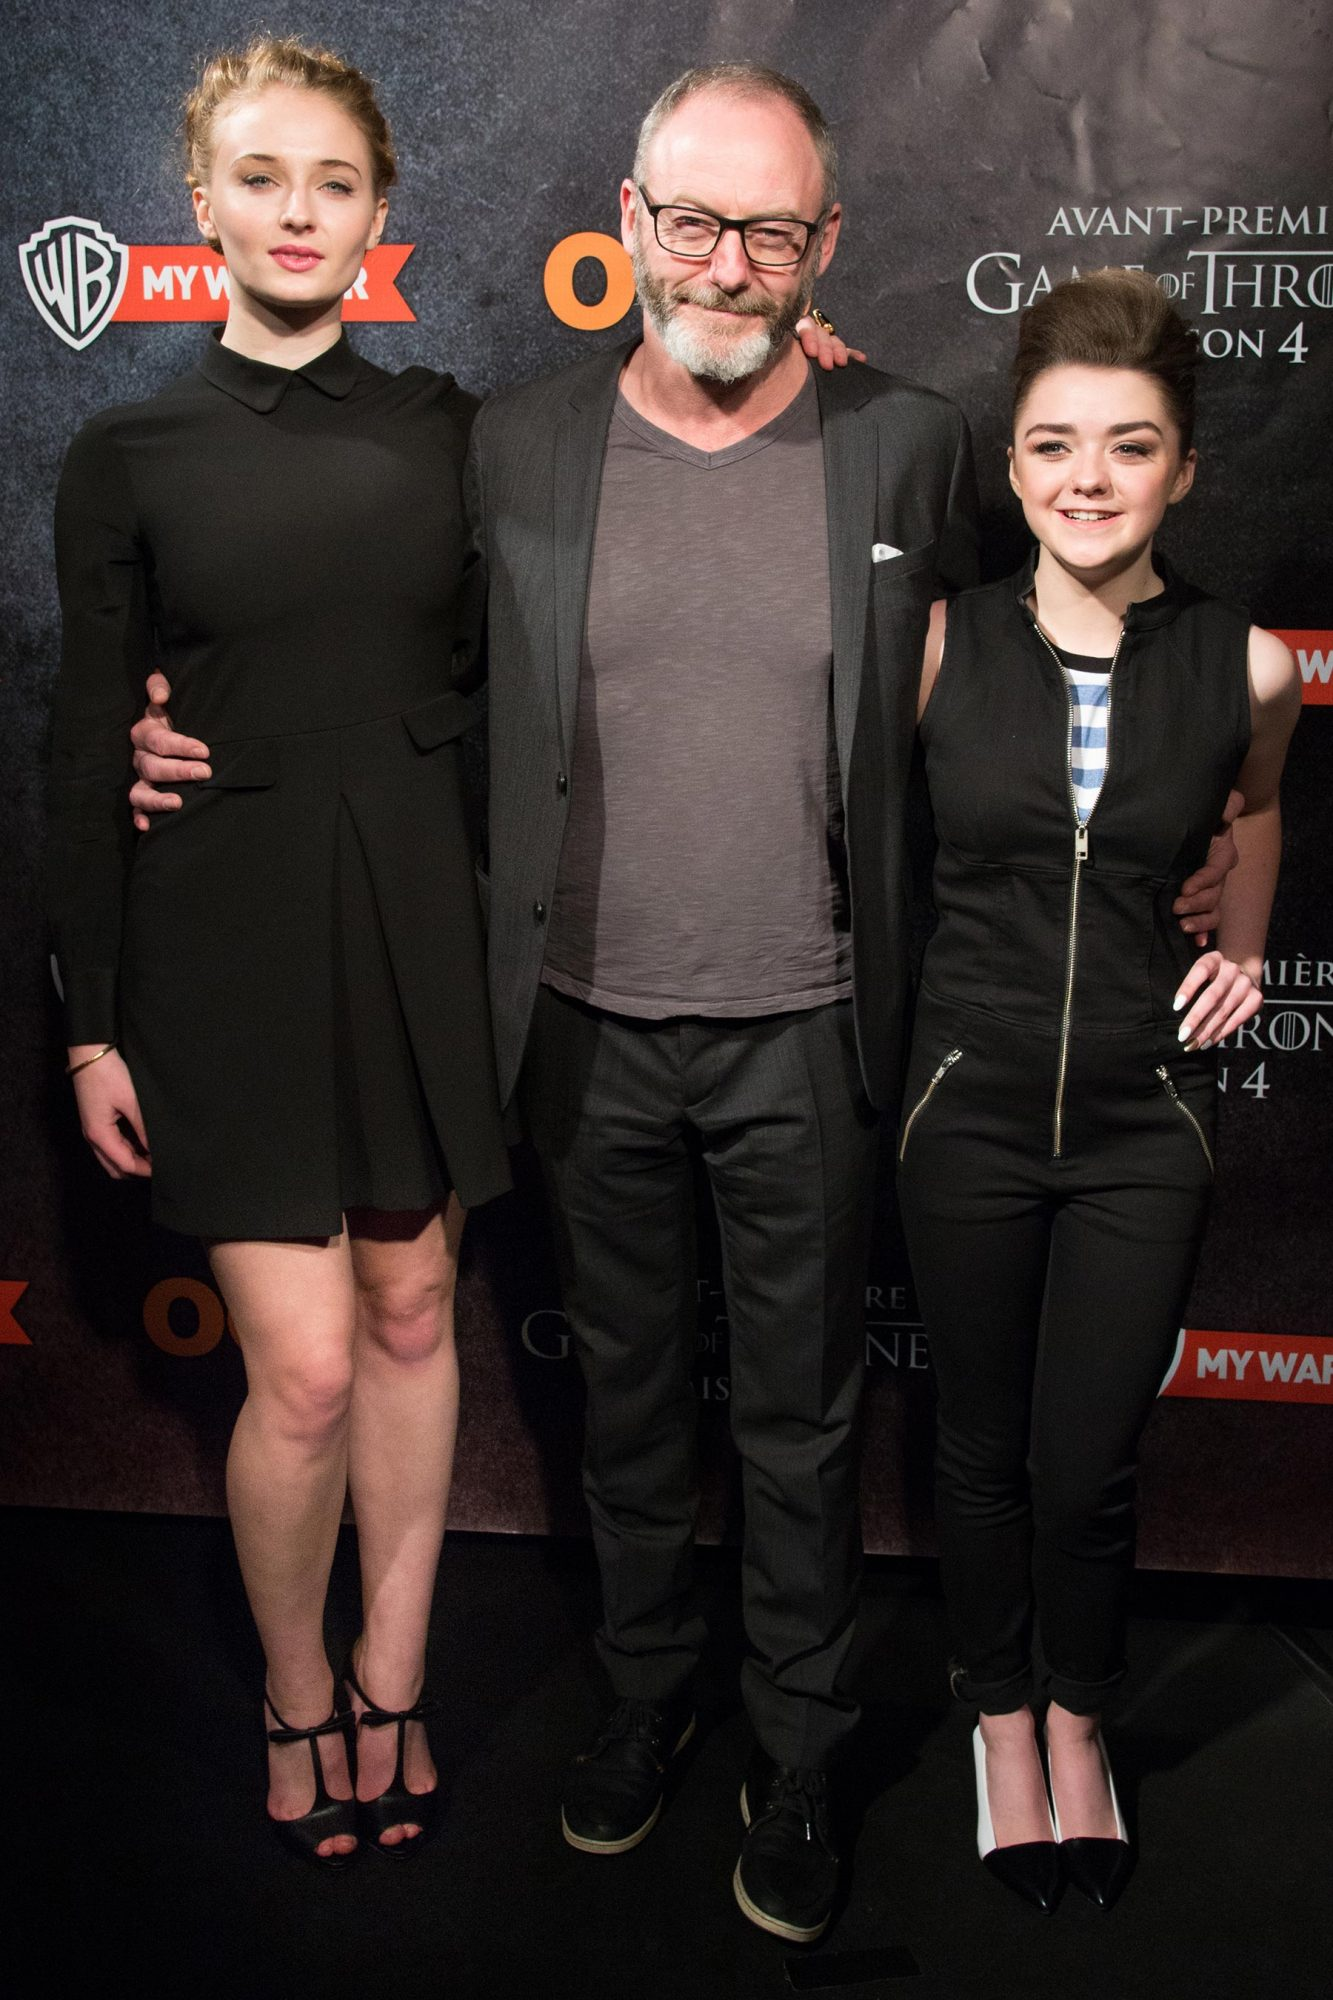 France - Game of Thrones, Season 4' : Paris Premiere